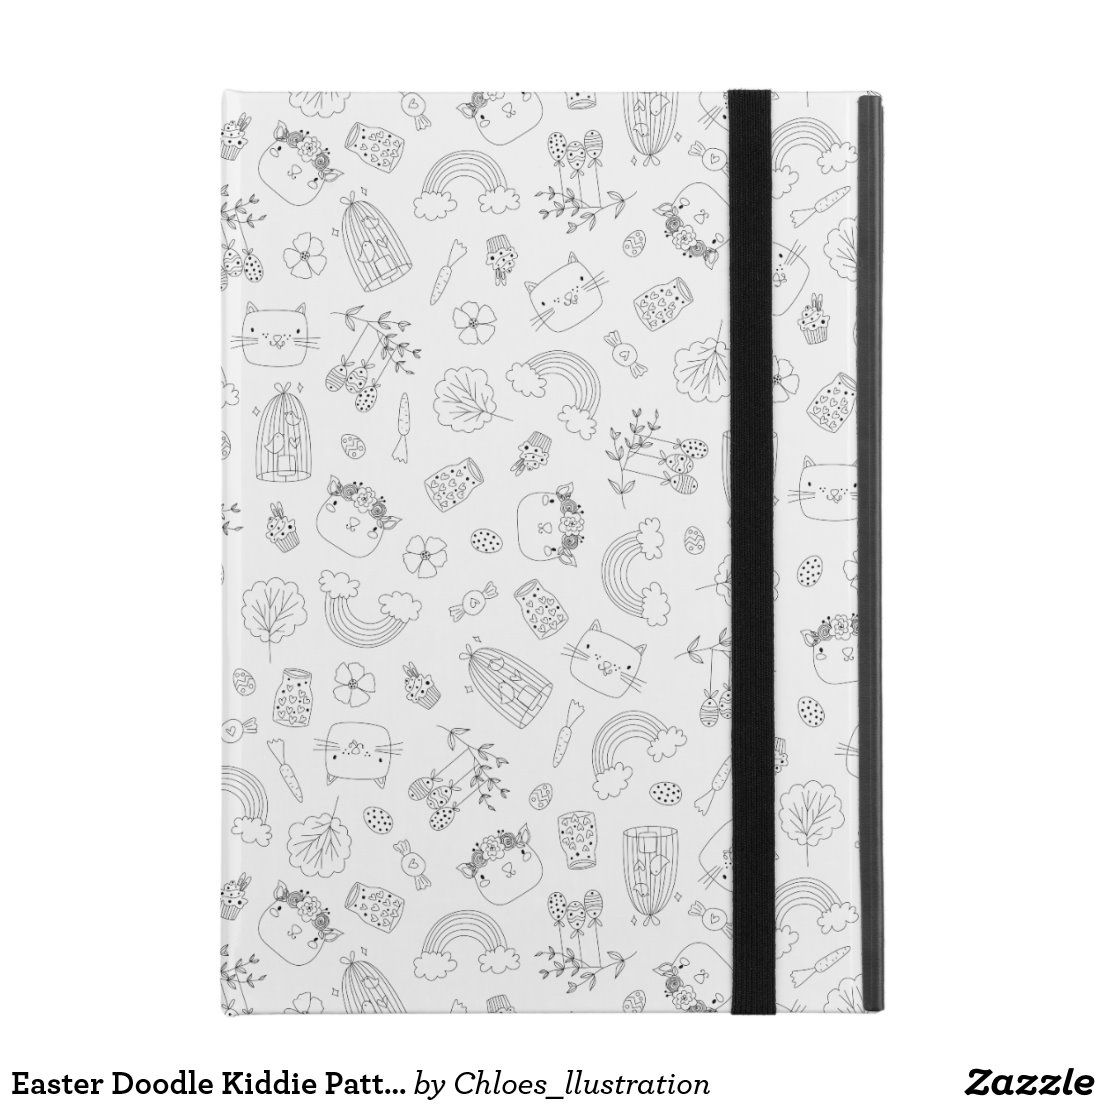 "Easter Doodle Kiddie Pattern iPad Pro 9.7"" Case 